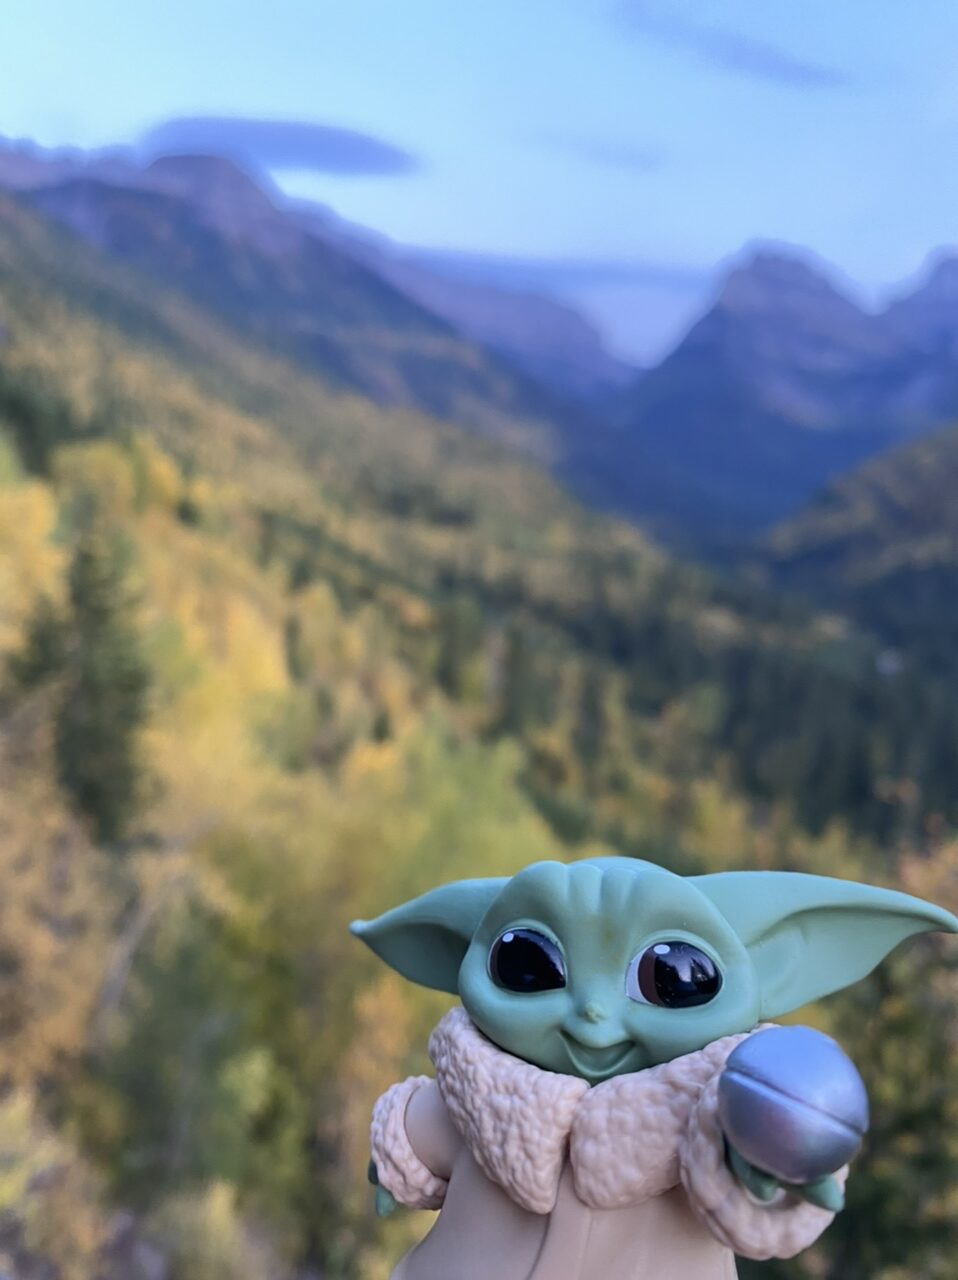 Baby Yoda toy in mountains